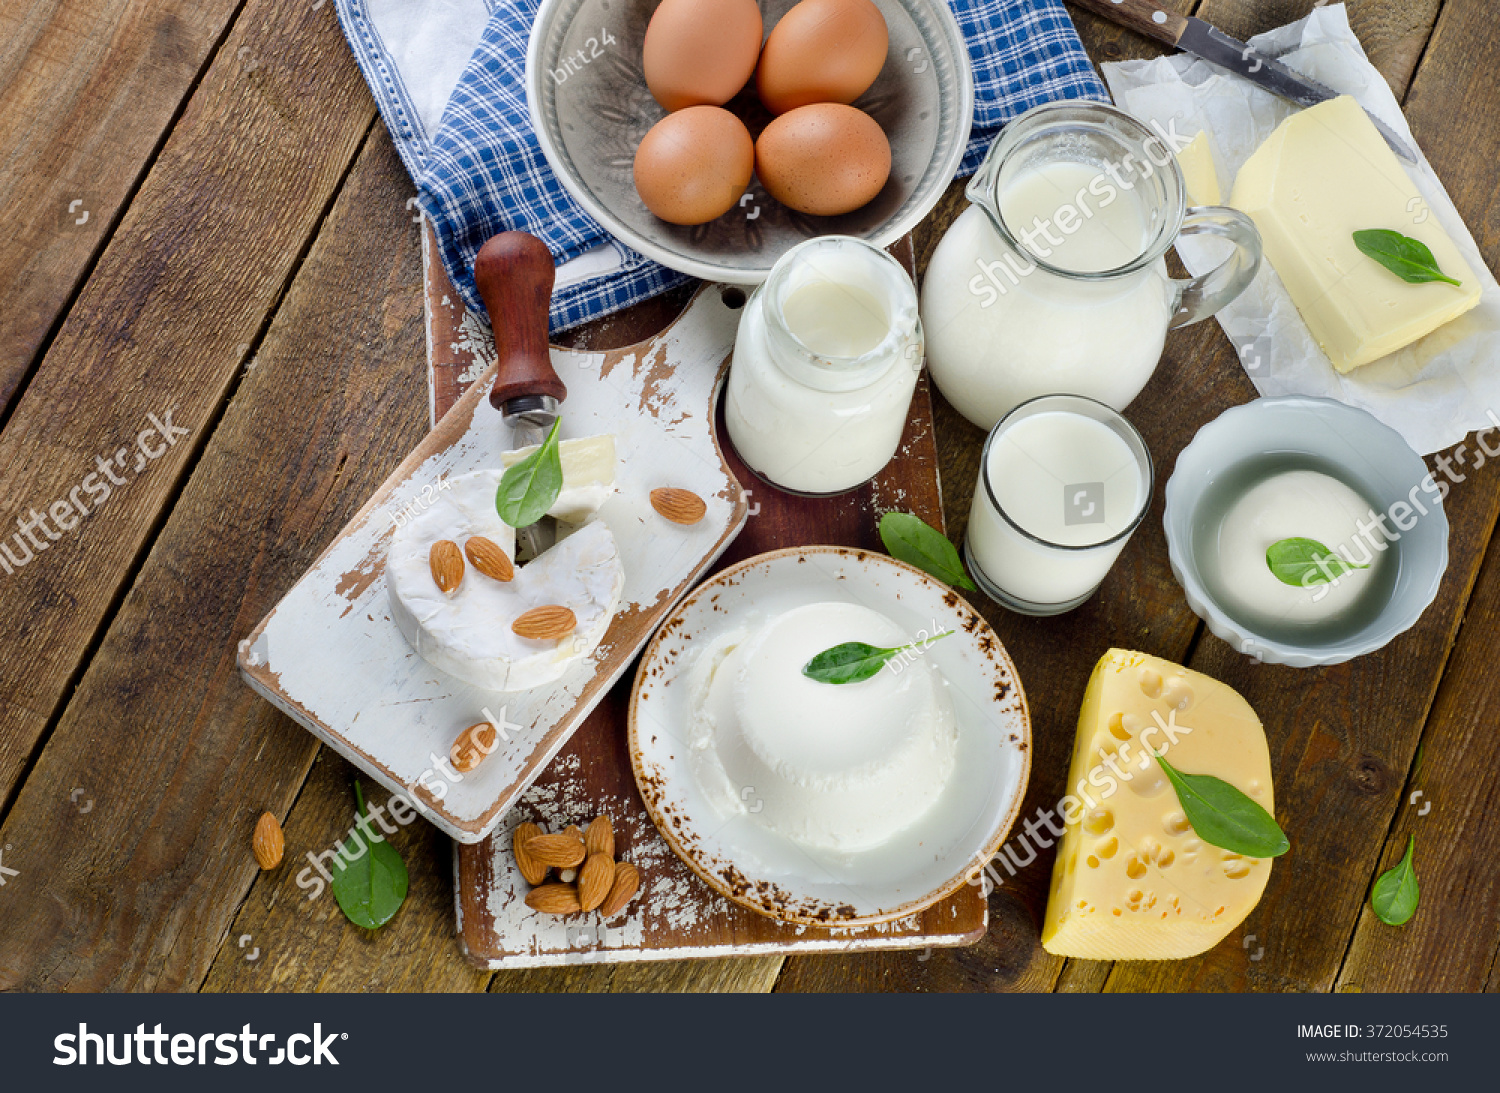 are dairy products unhealthy Here are some common pasteurized foods that may seem healthy, but are actually missing key enzymes and nutrients to keep you at your healthy  raw dairy products.